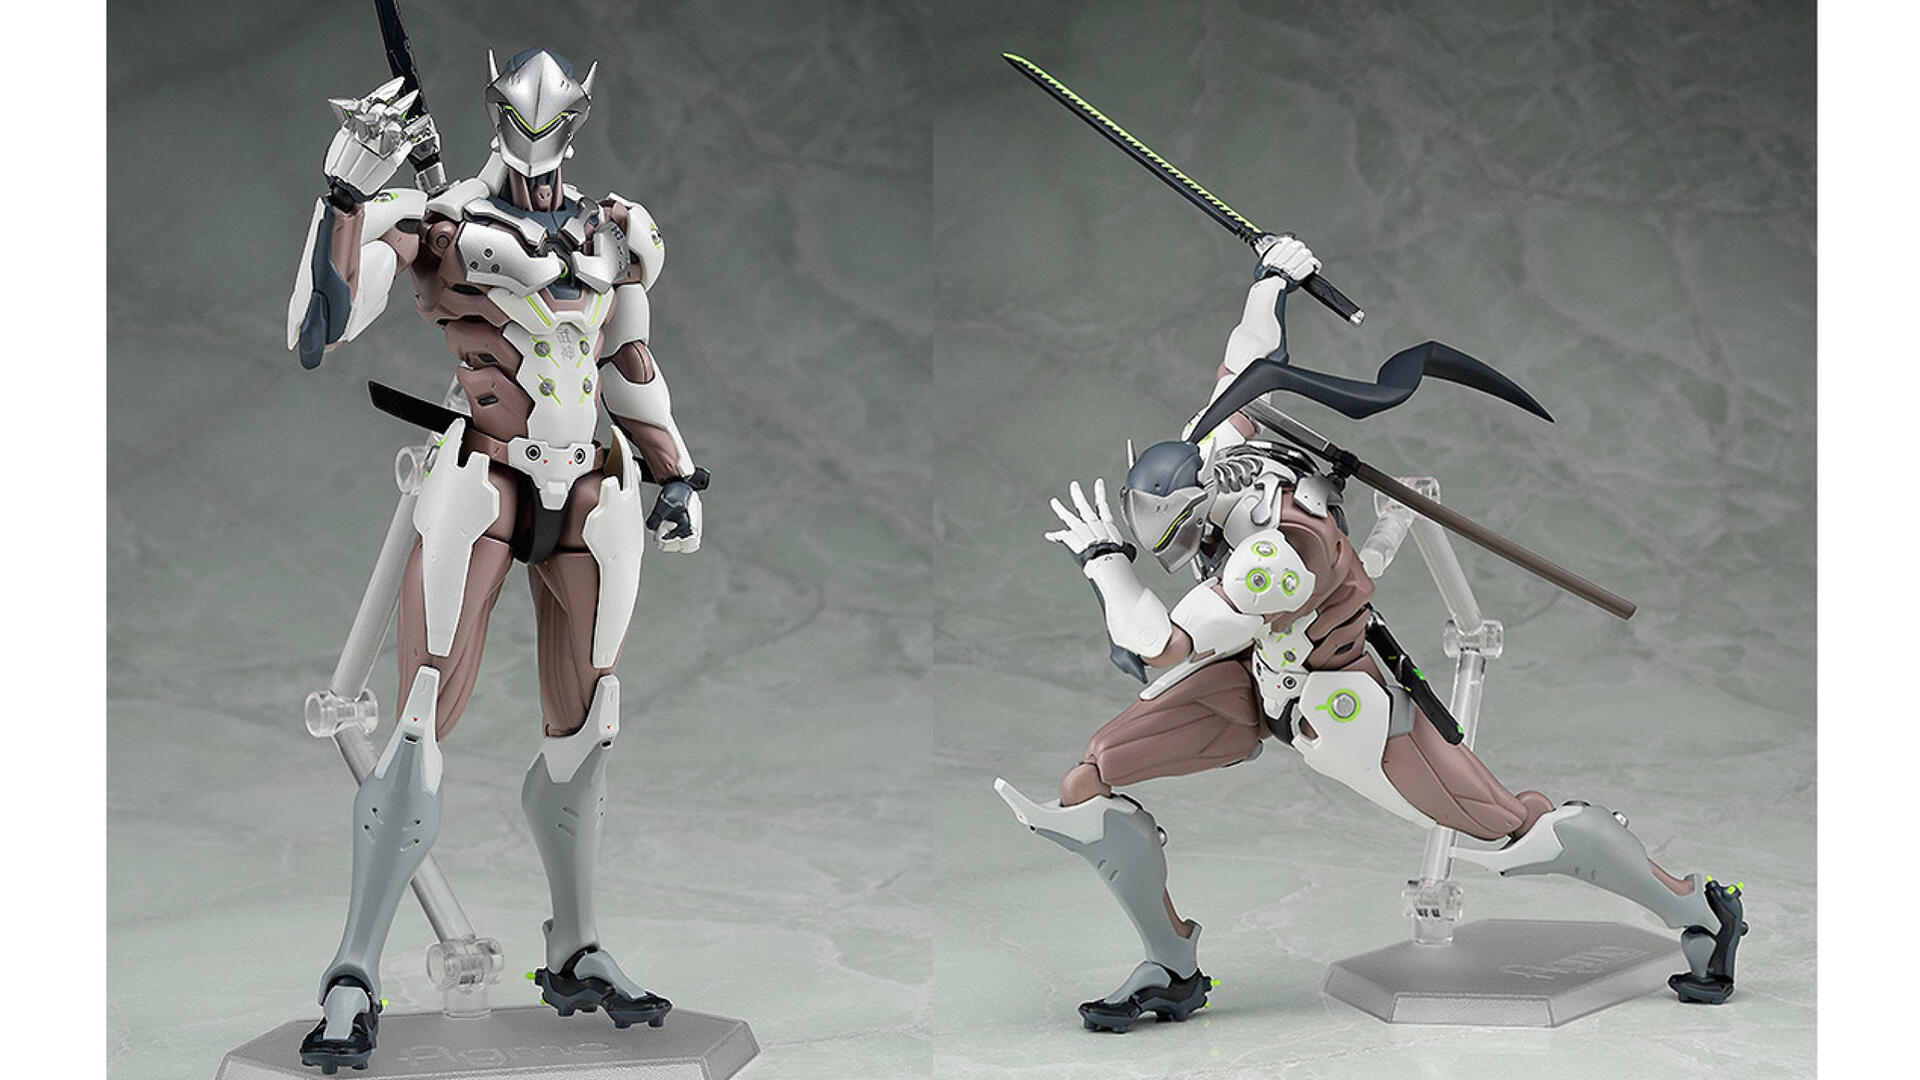 You Can Now Pre-Order a Genji from Overwatch Figma Figure